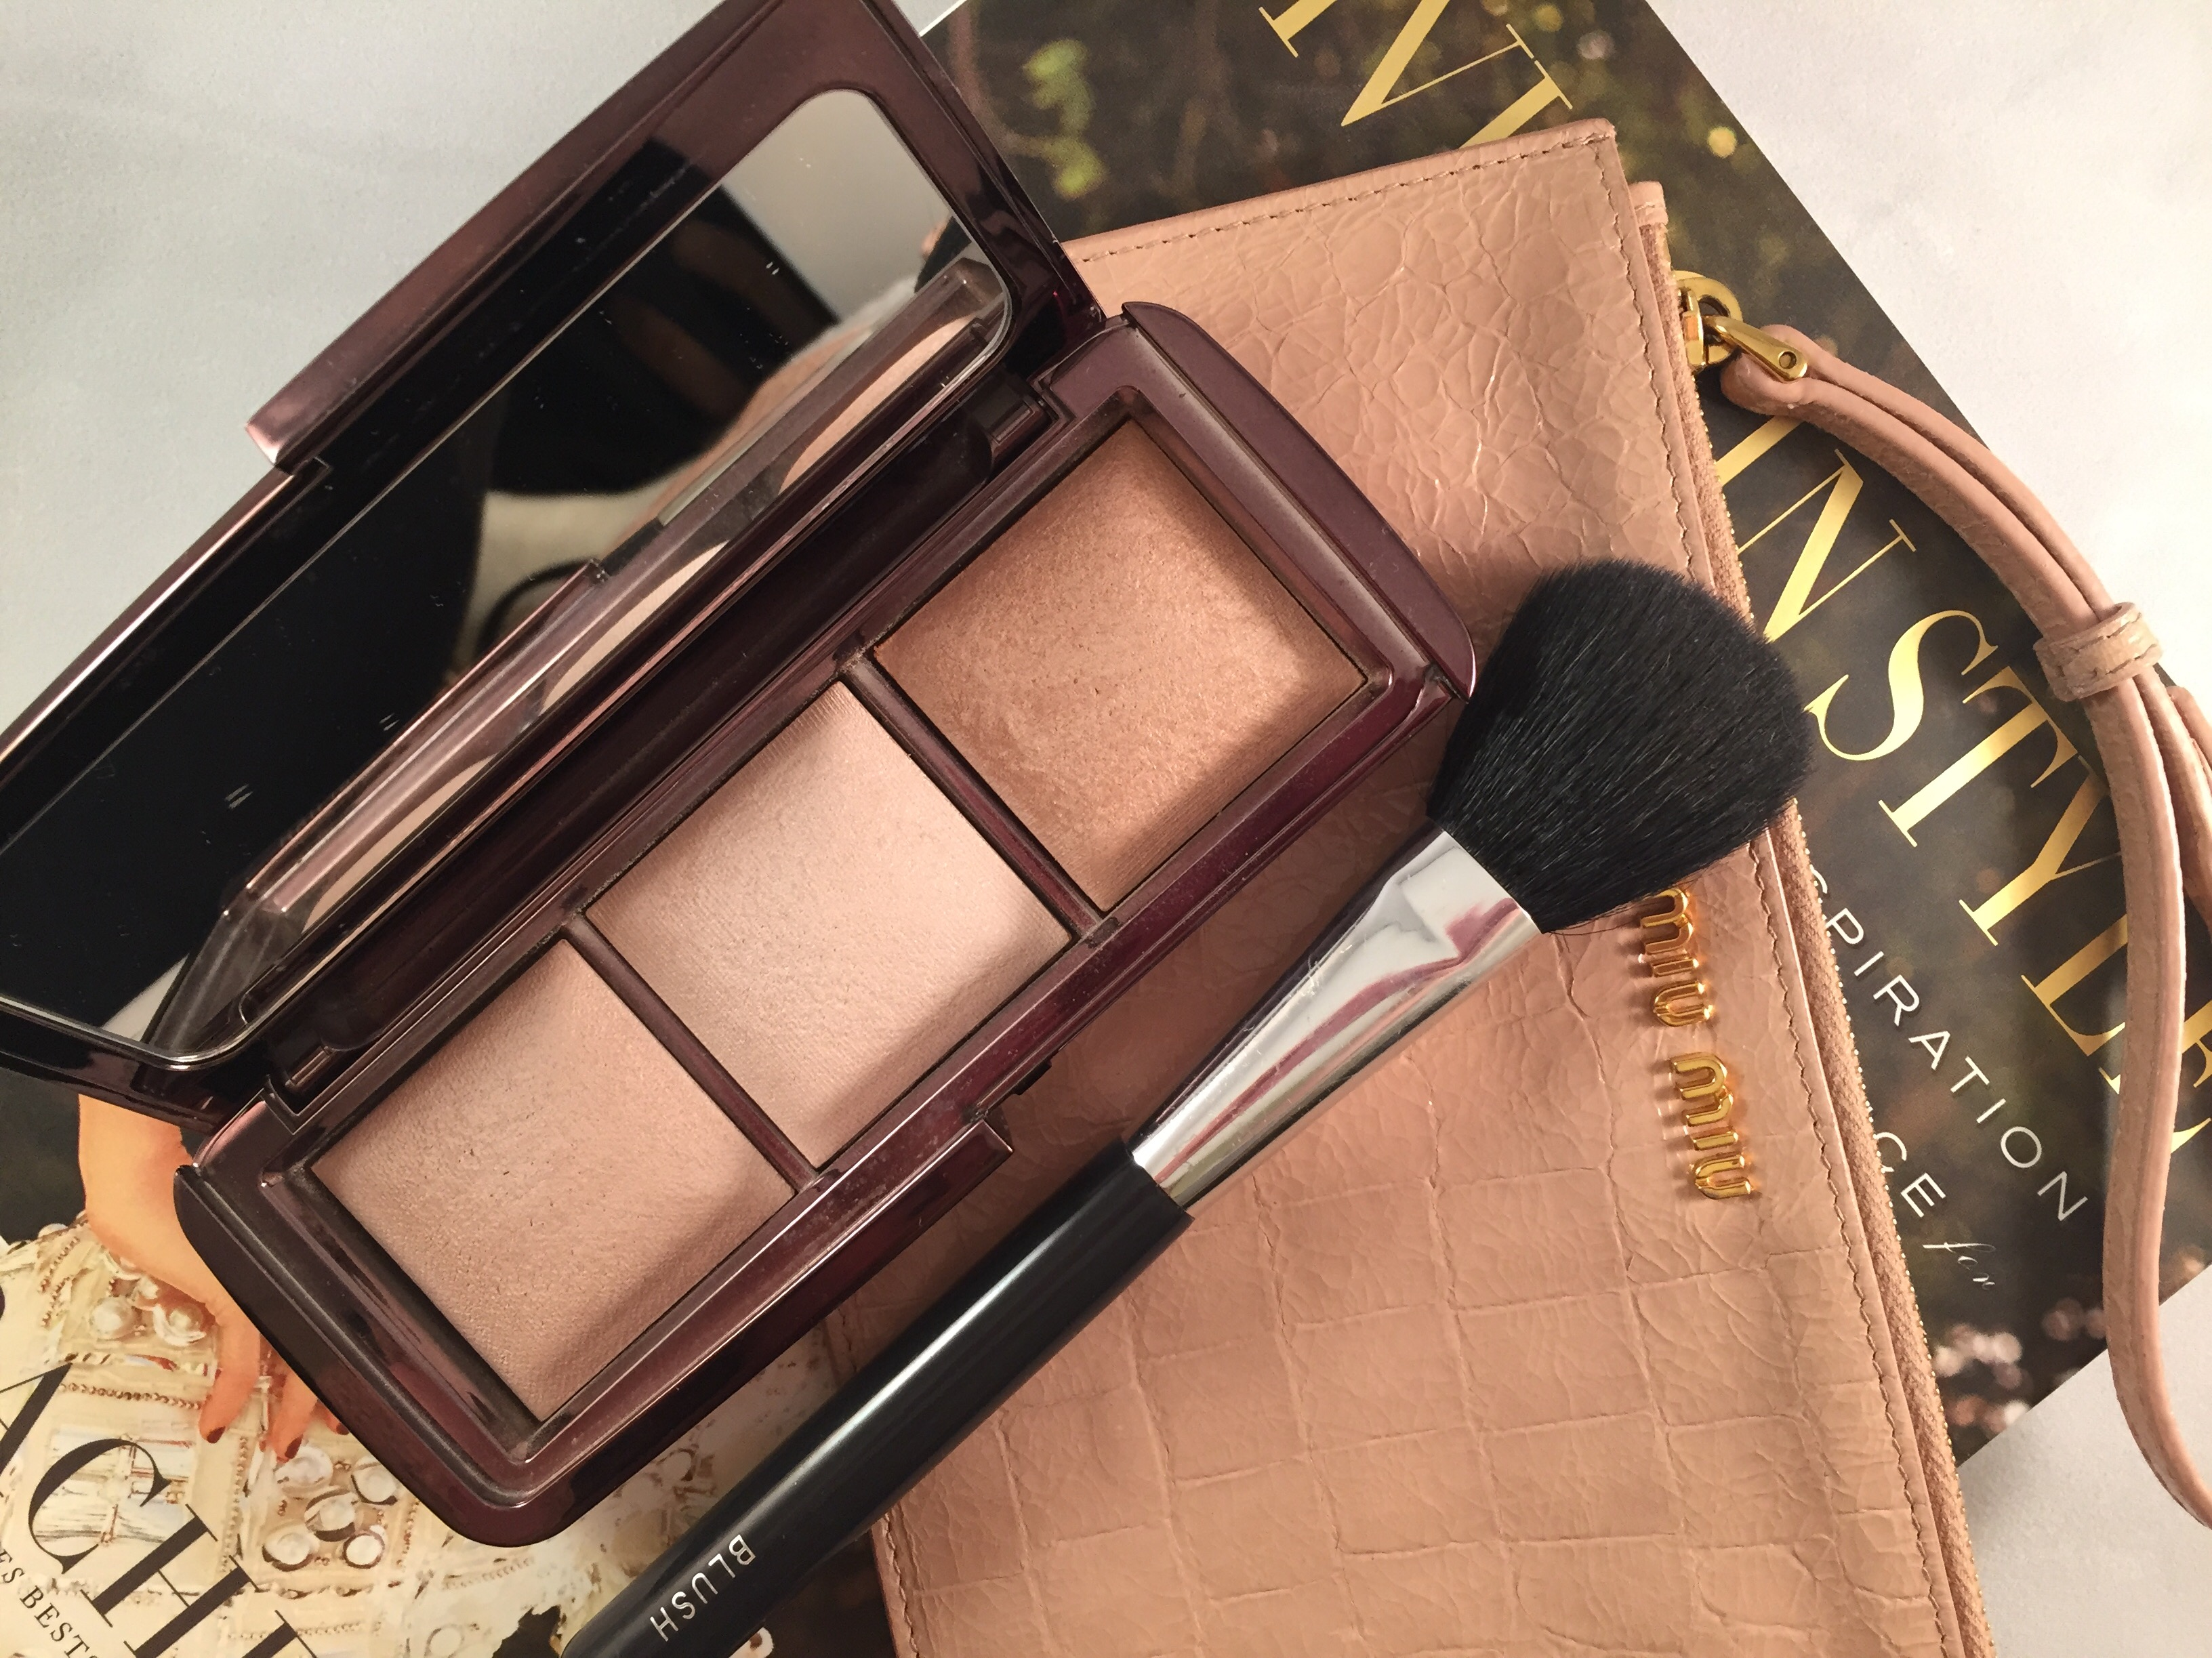 ... Rarely Do I Find A Makeup Prod Is Purchased One Day And Used Everyday  And Night From That Day Forward. The Hourglass Ambient Lighting Palette Was  One Of ...